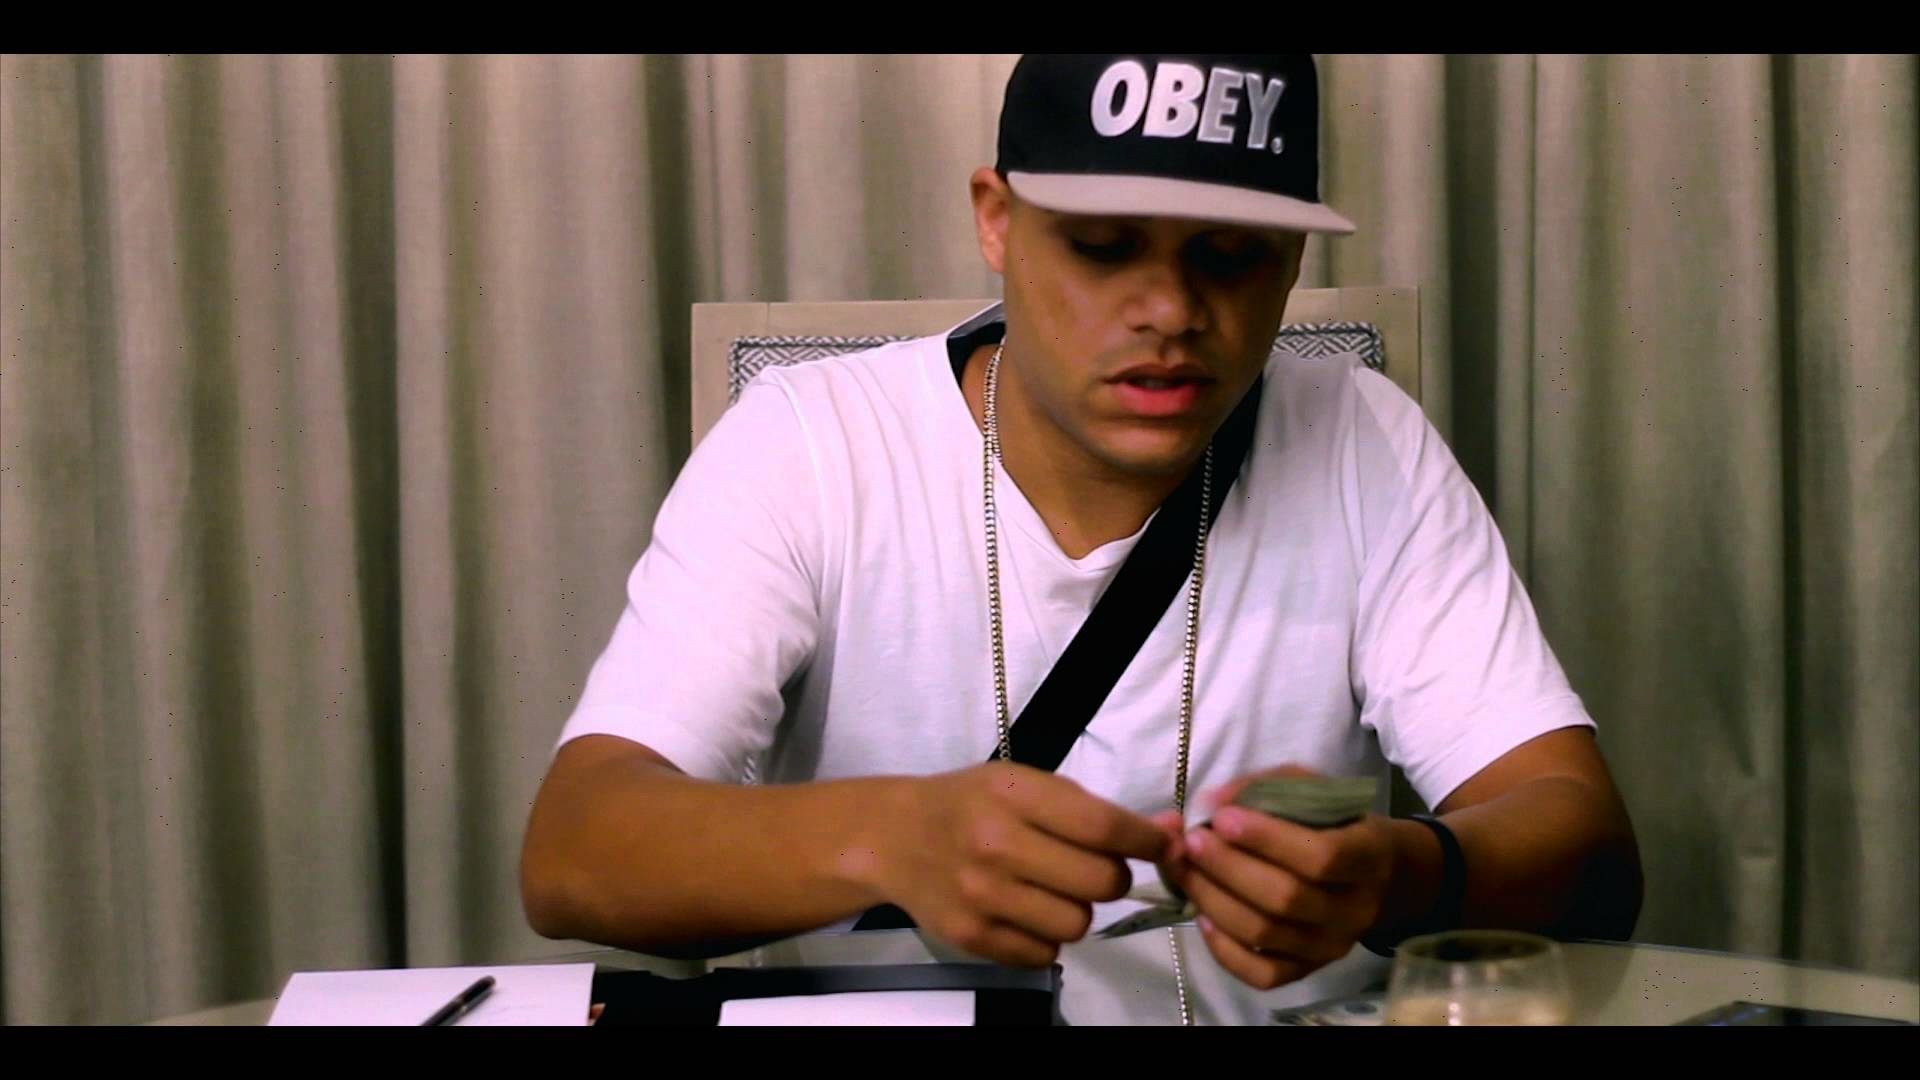 Jowell Ft. Khey – Me Quiere Me Odia (Official Video)